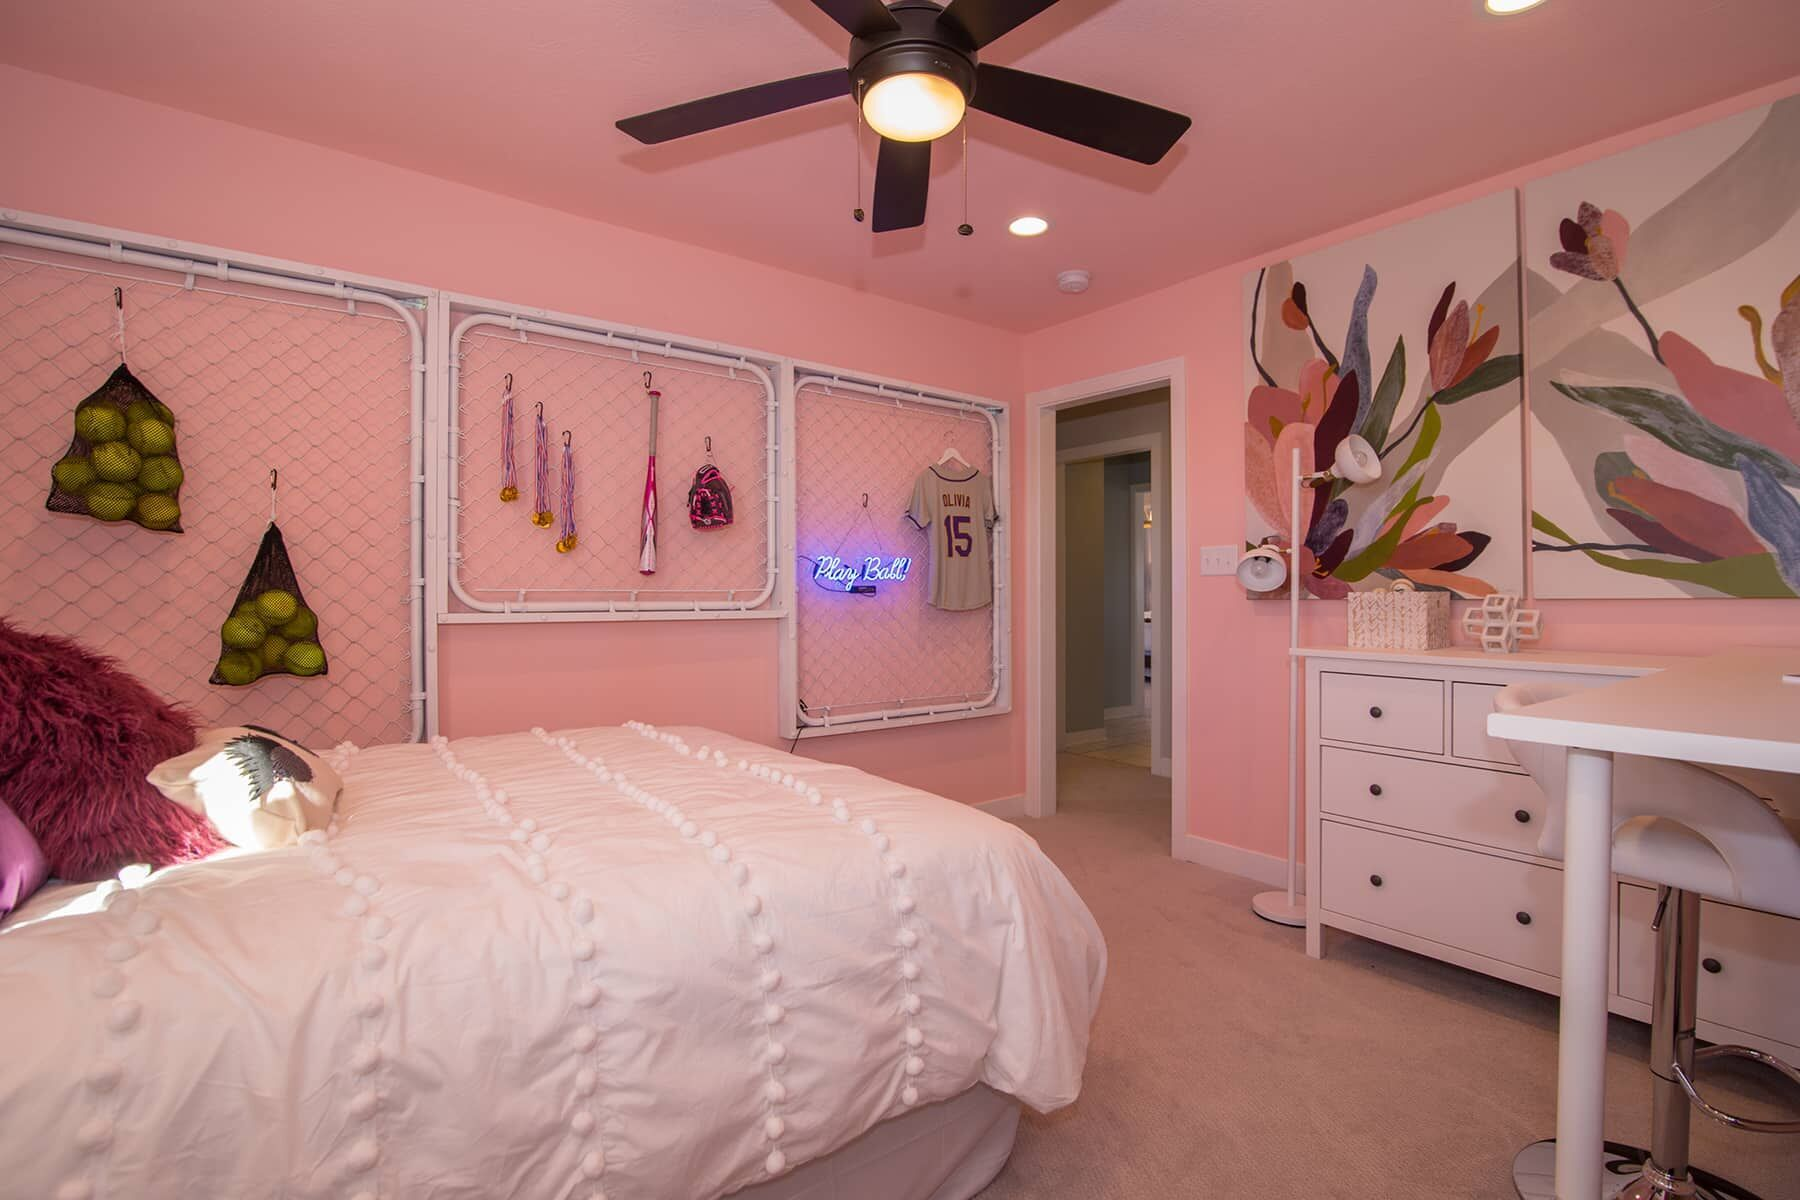 Bedroom featured in the Glendale Basement By M/I Homes in Indianapolis, IN